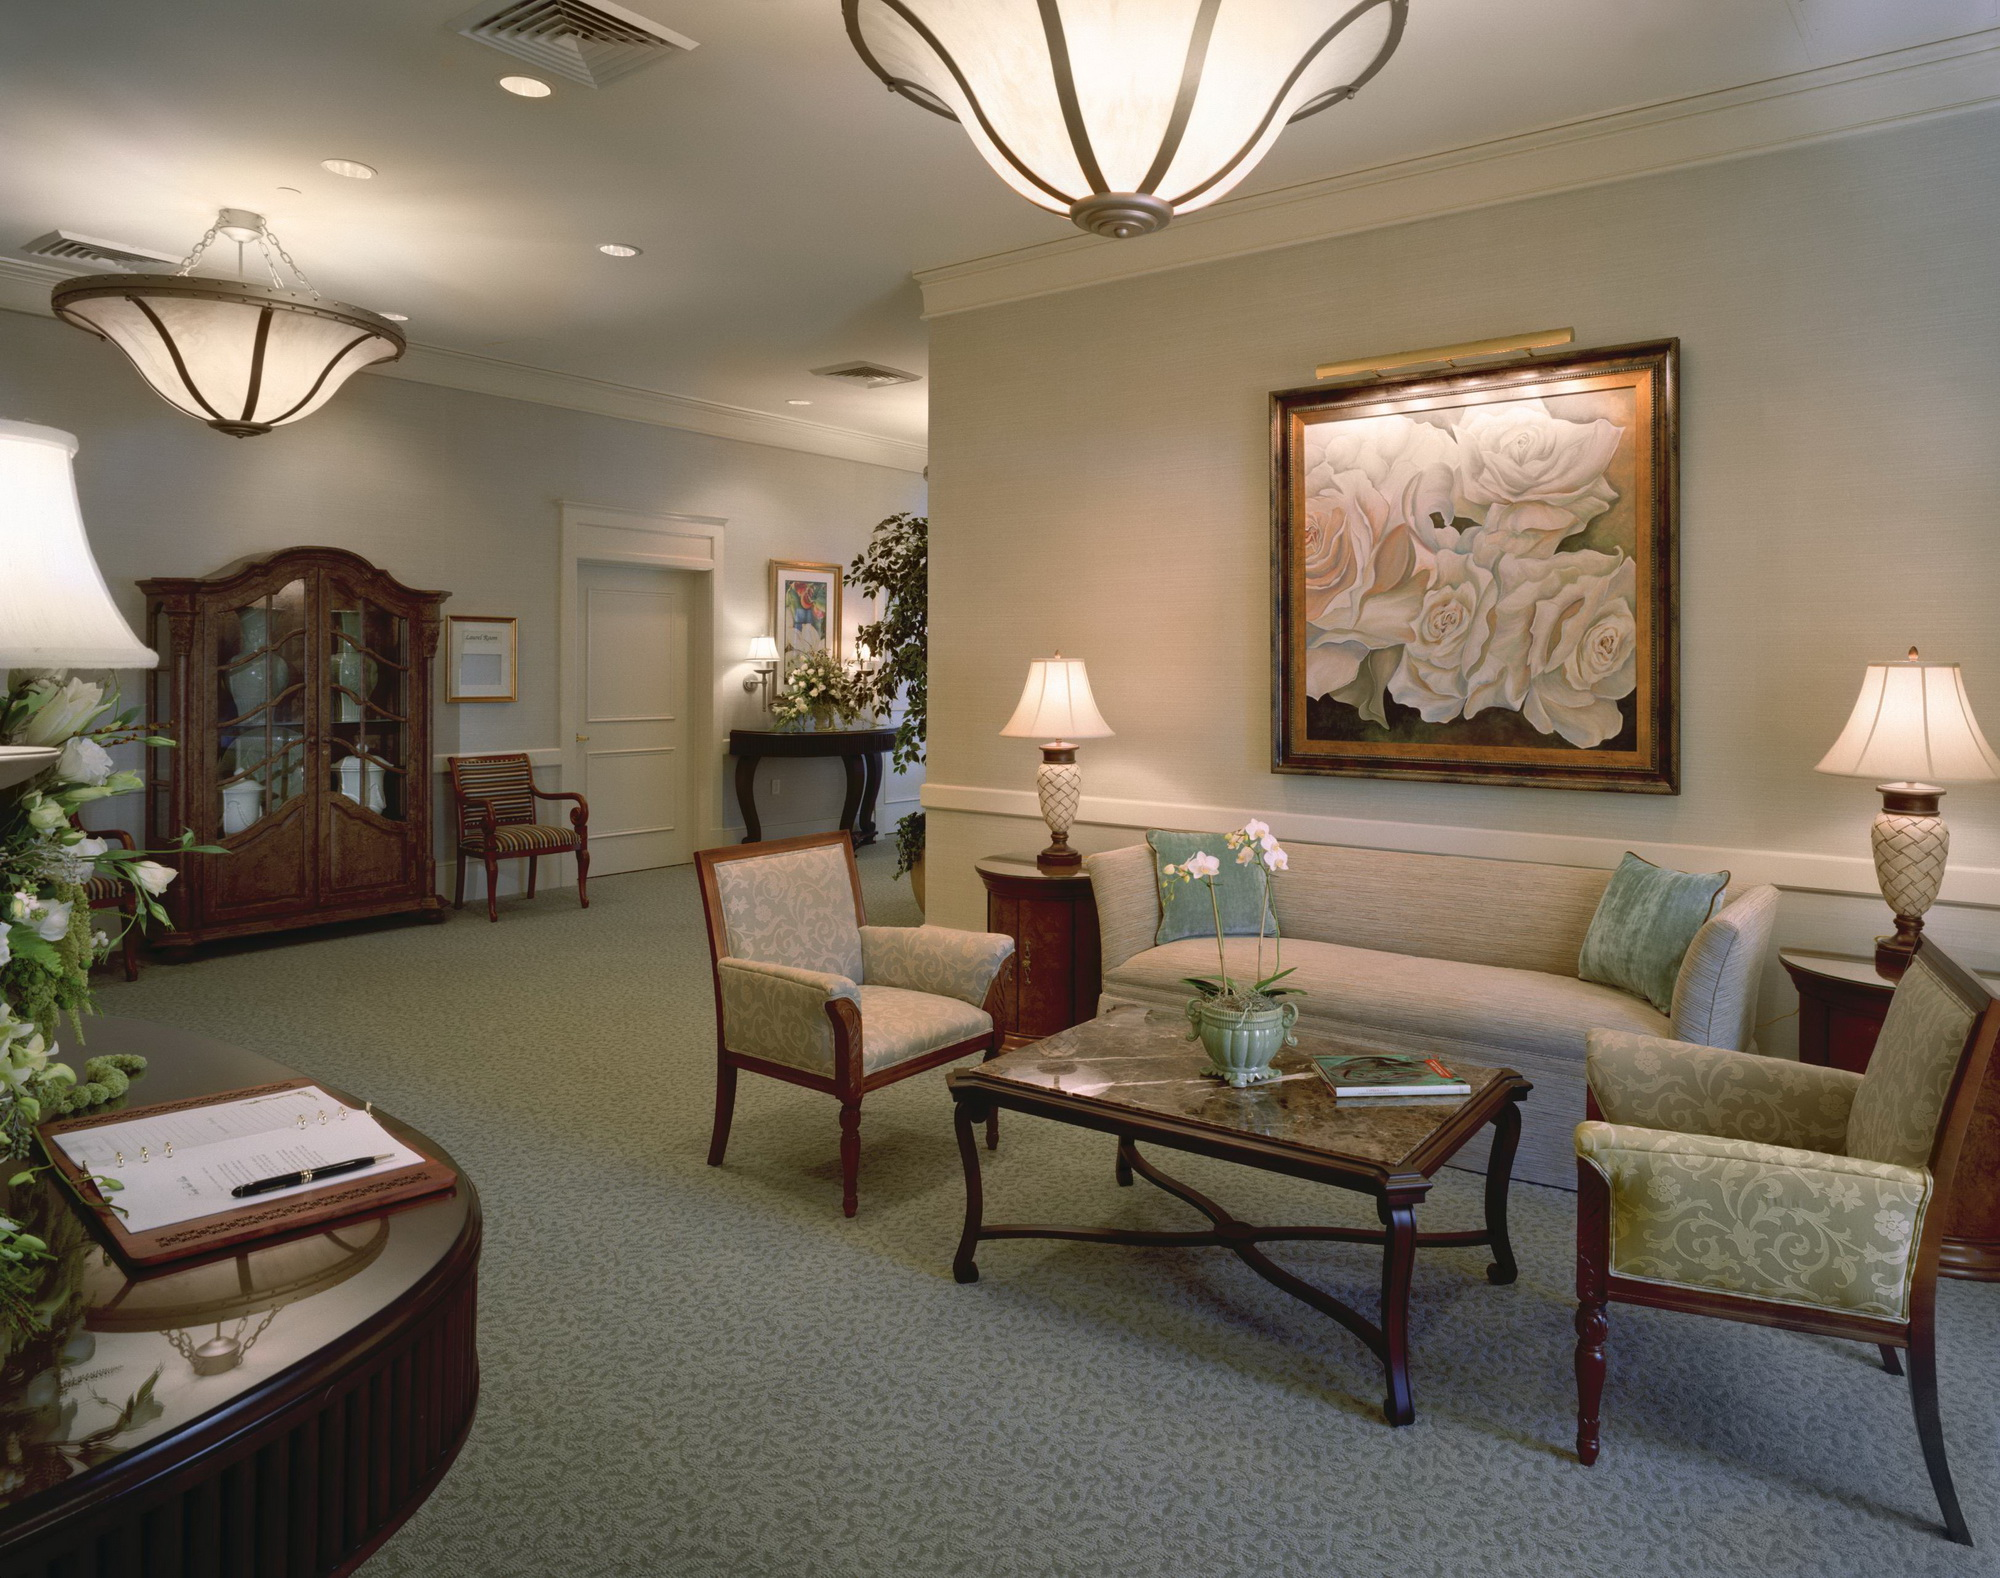 Cypress lawn funeral home jst architects for Interior designs for homes pictures